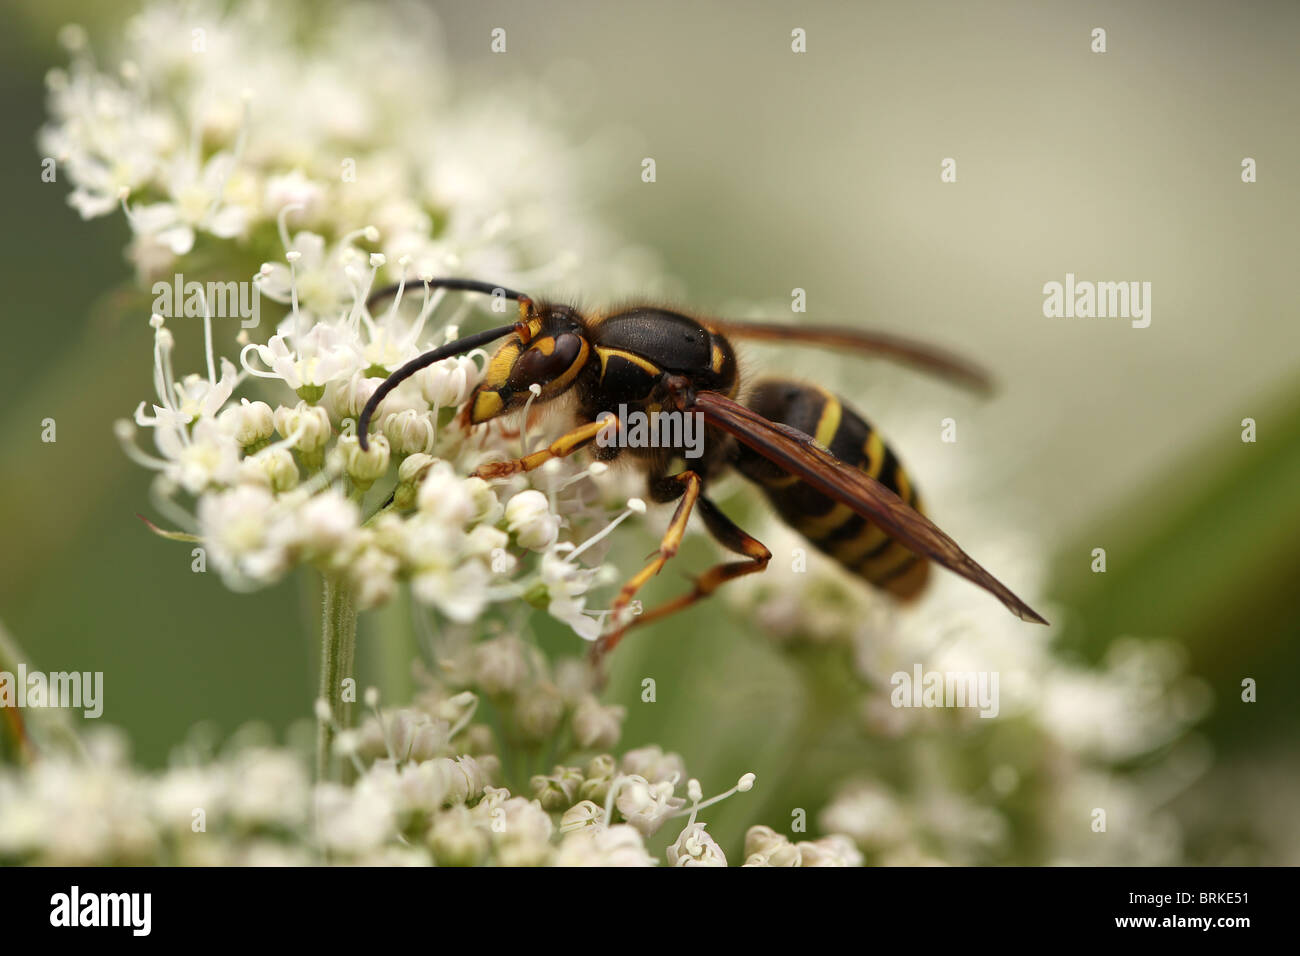 Macro of a Common Wasp (Vespa vulgaris) on white flowers - Stock Image